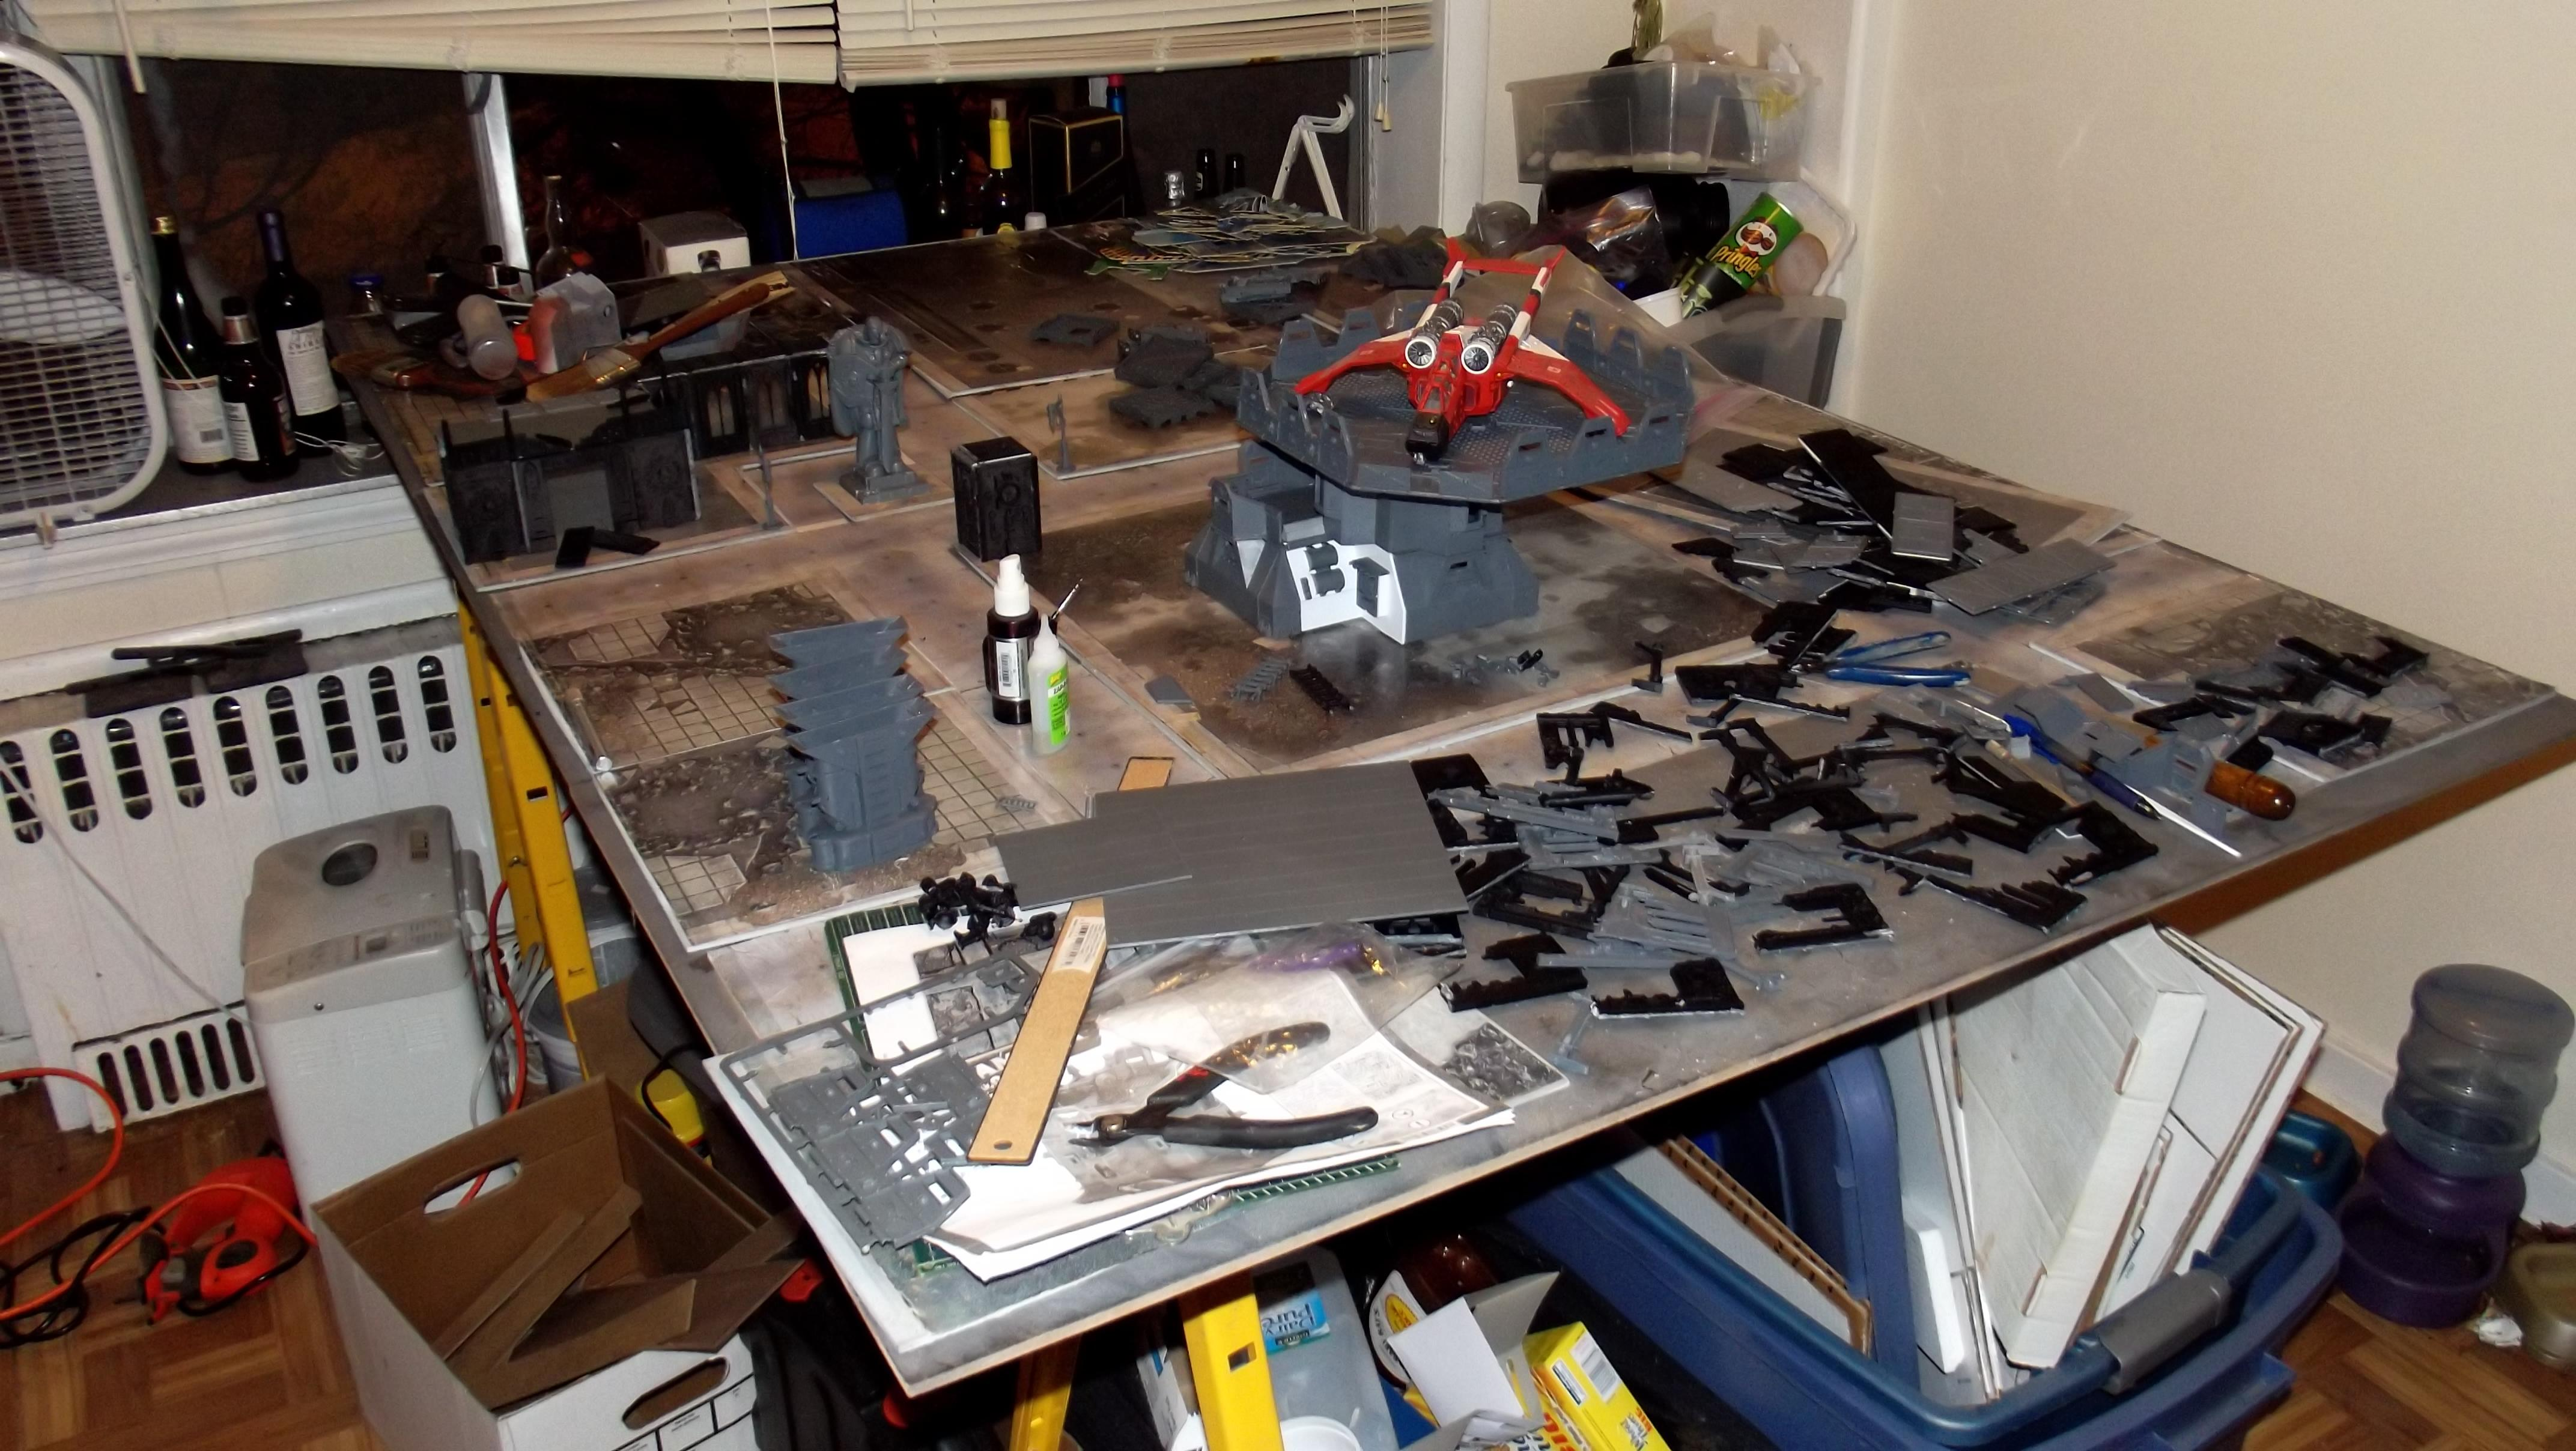 Cities Of Death, Game Table, Messy, Work In Progress